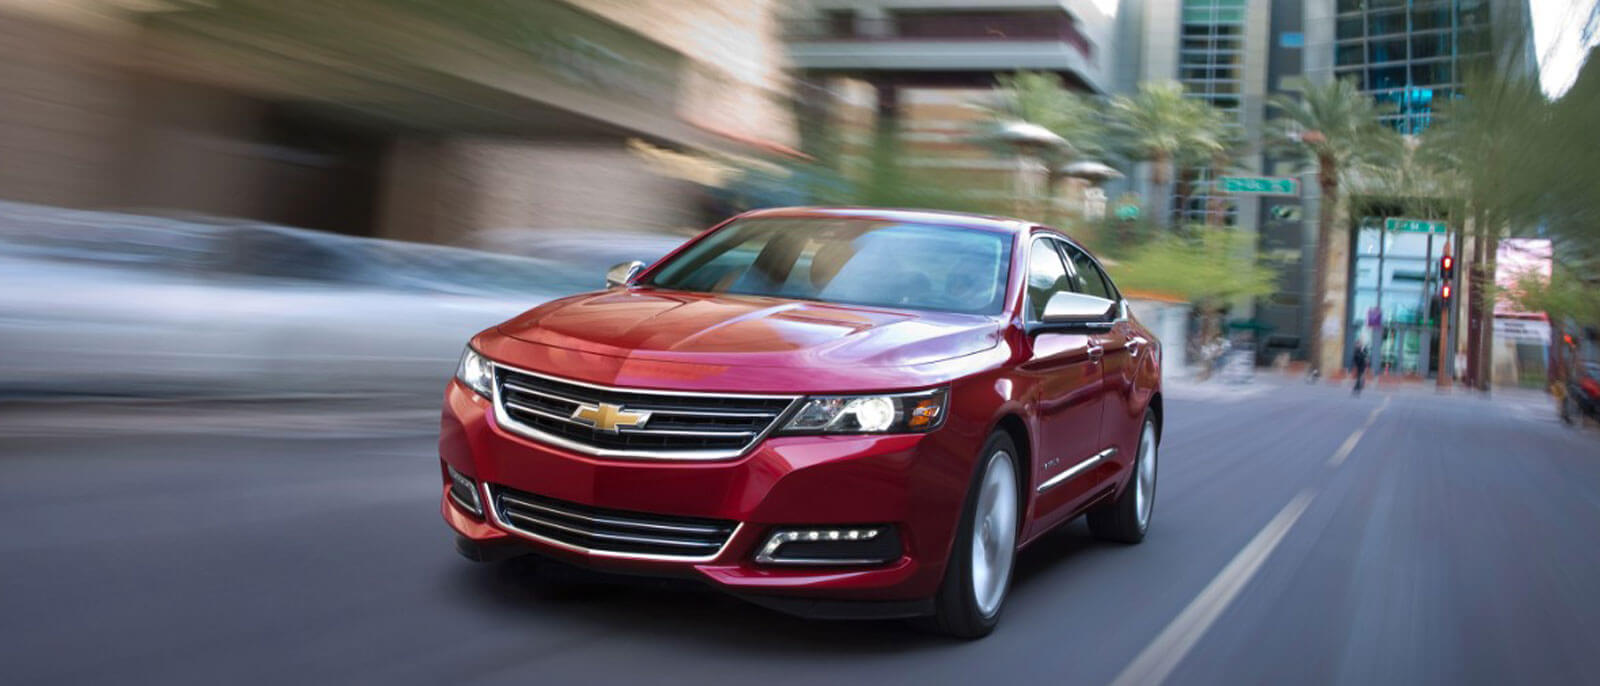 new 2017 chevy impala specifications \u0026 info cox chevrolet2016 chevrolet impala interior; 2016 chevrolet impala in red